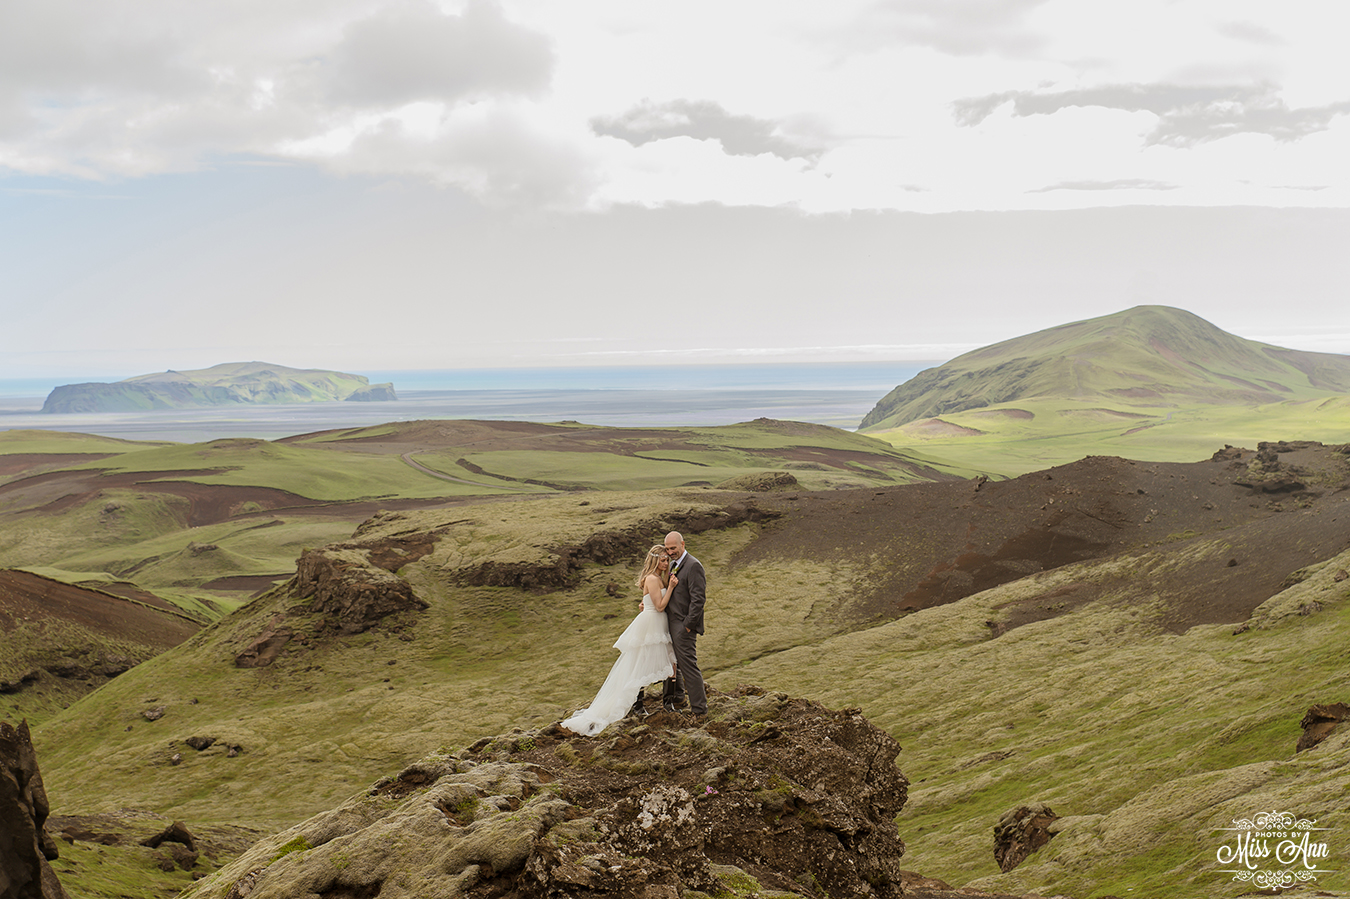 Best Iceland Wedding Photographer - Photos by Miss Ann